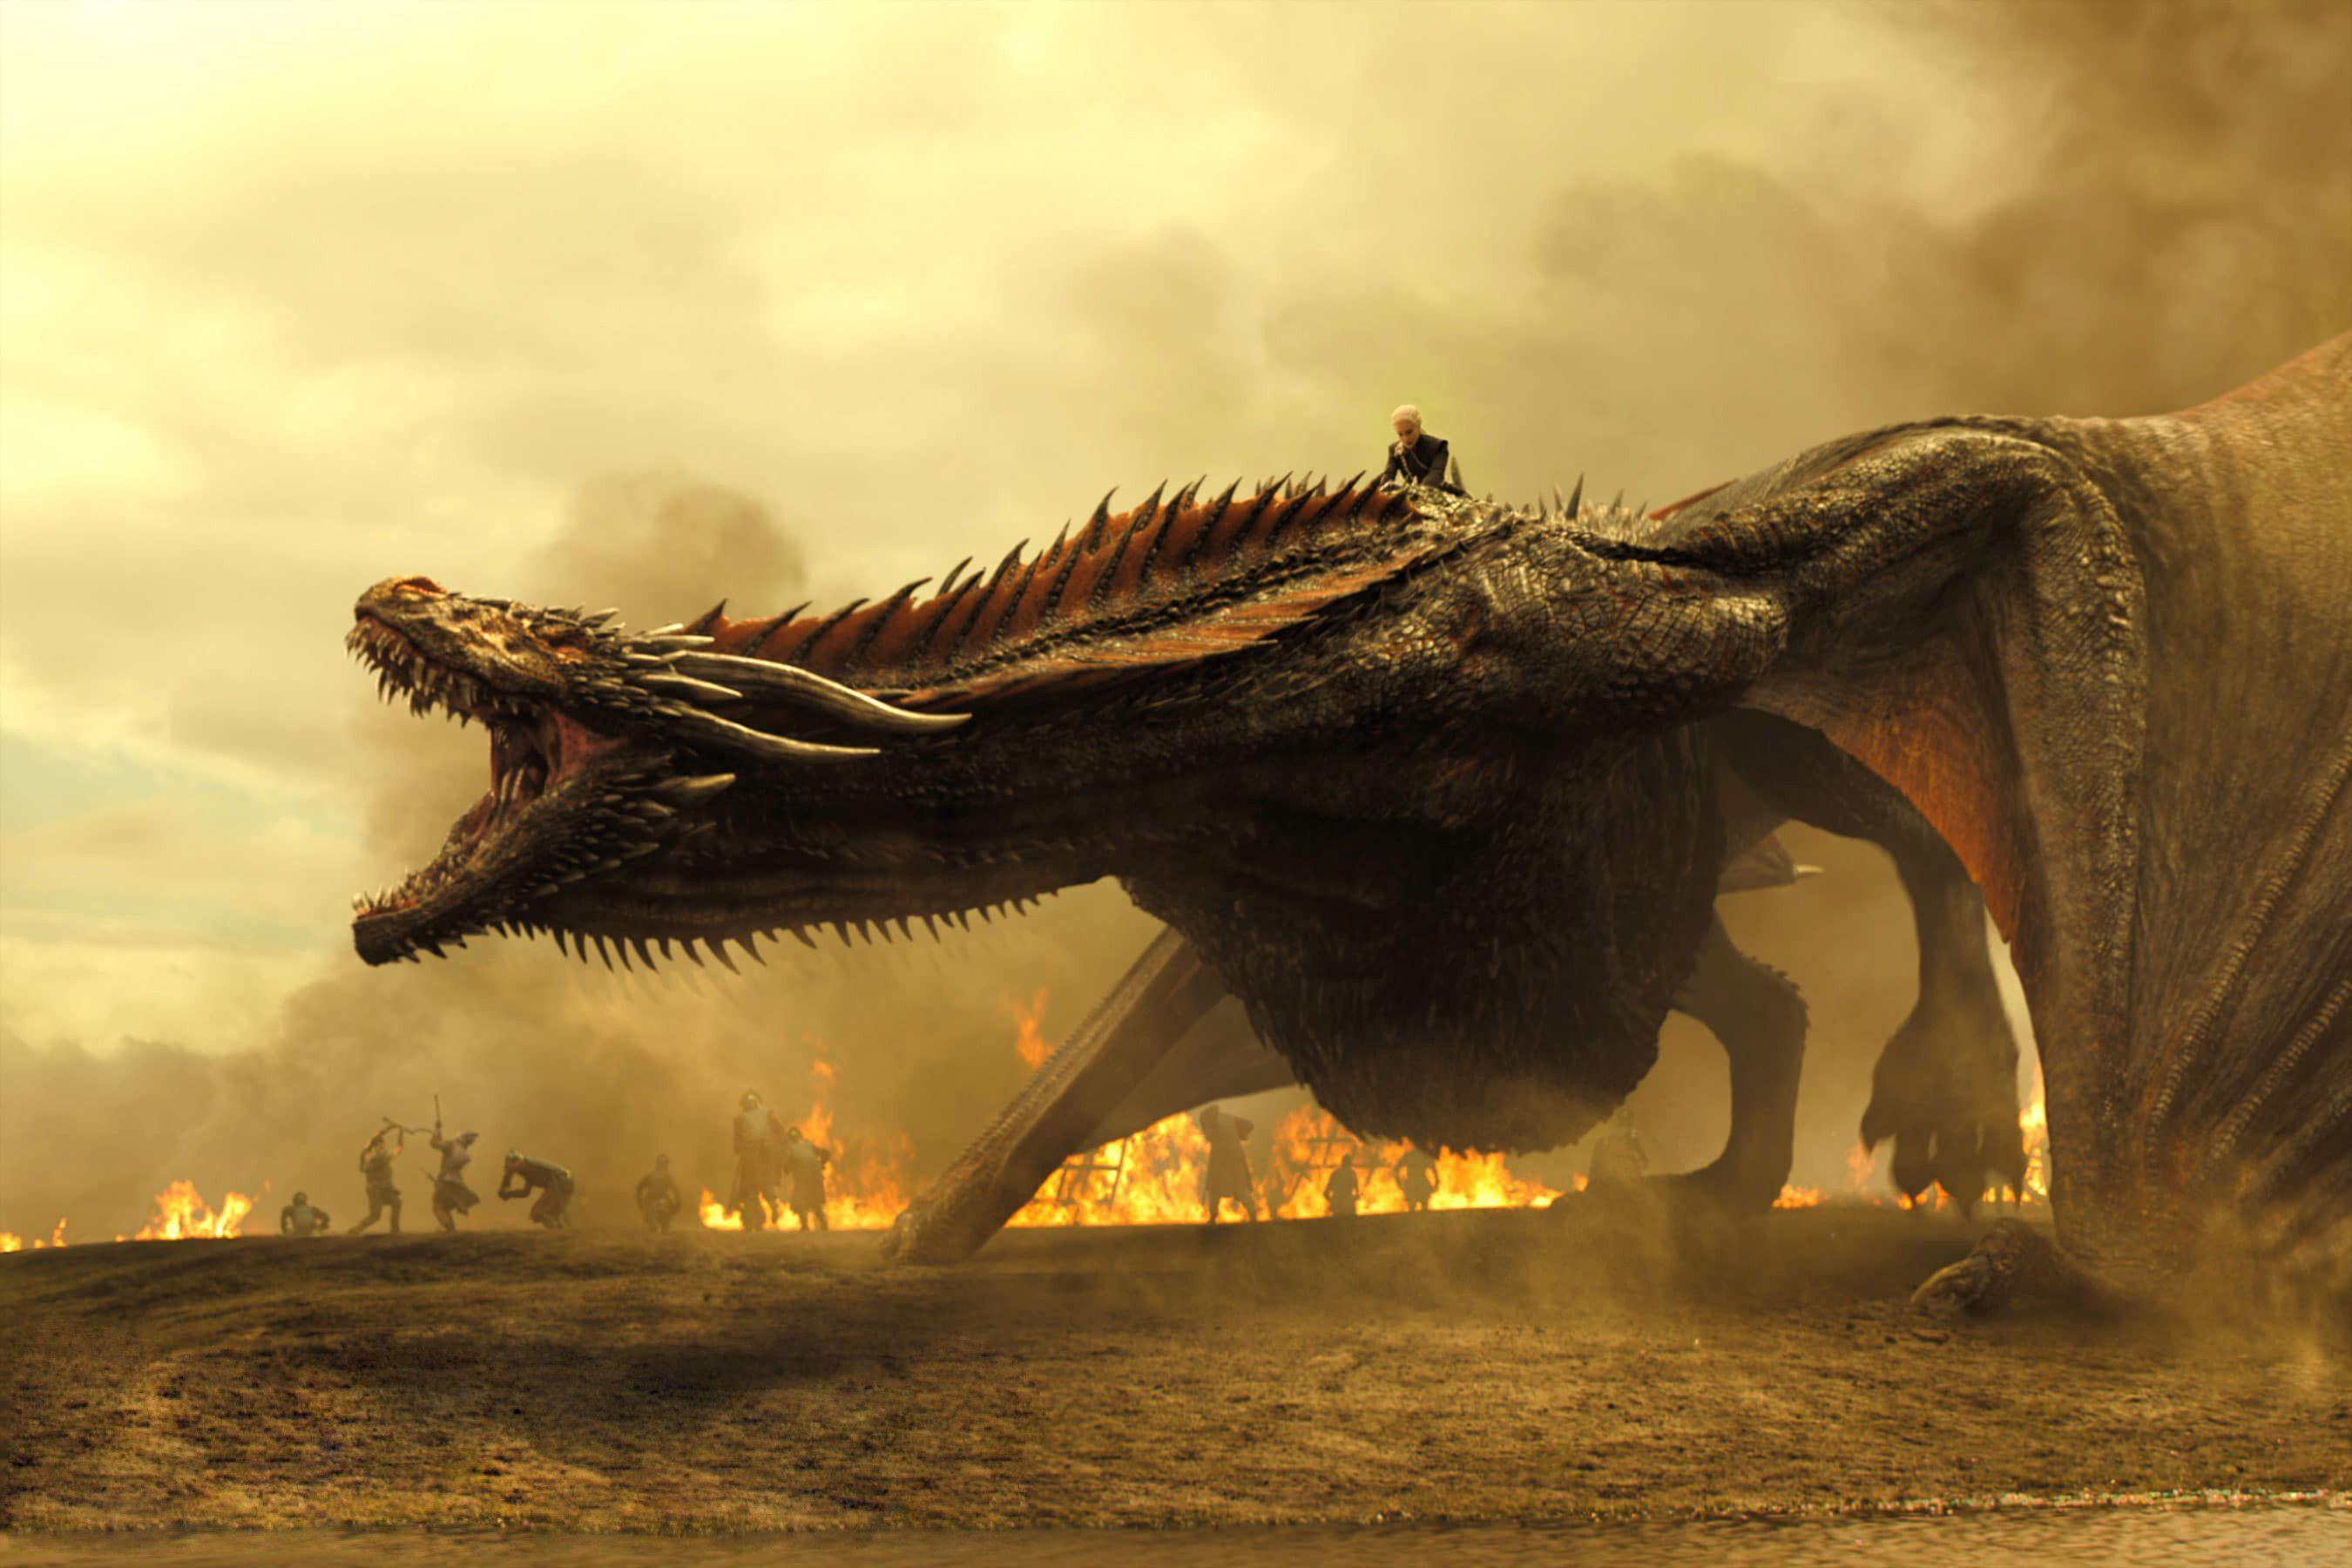 game of thrones wallpaper, drogon wallpapers